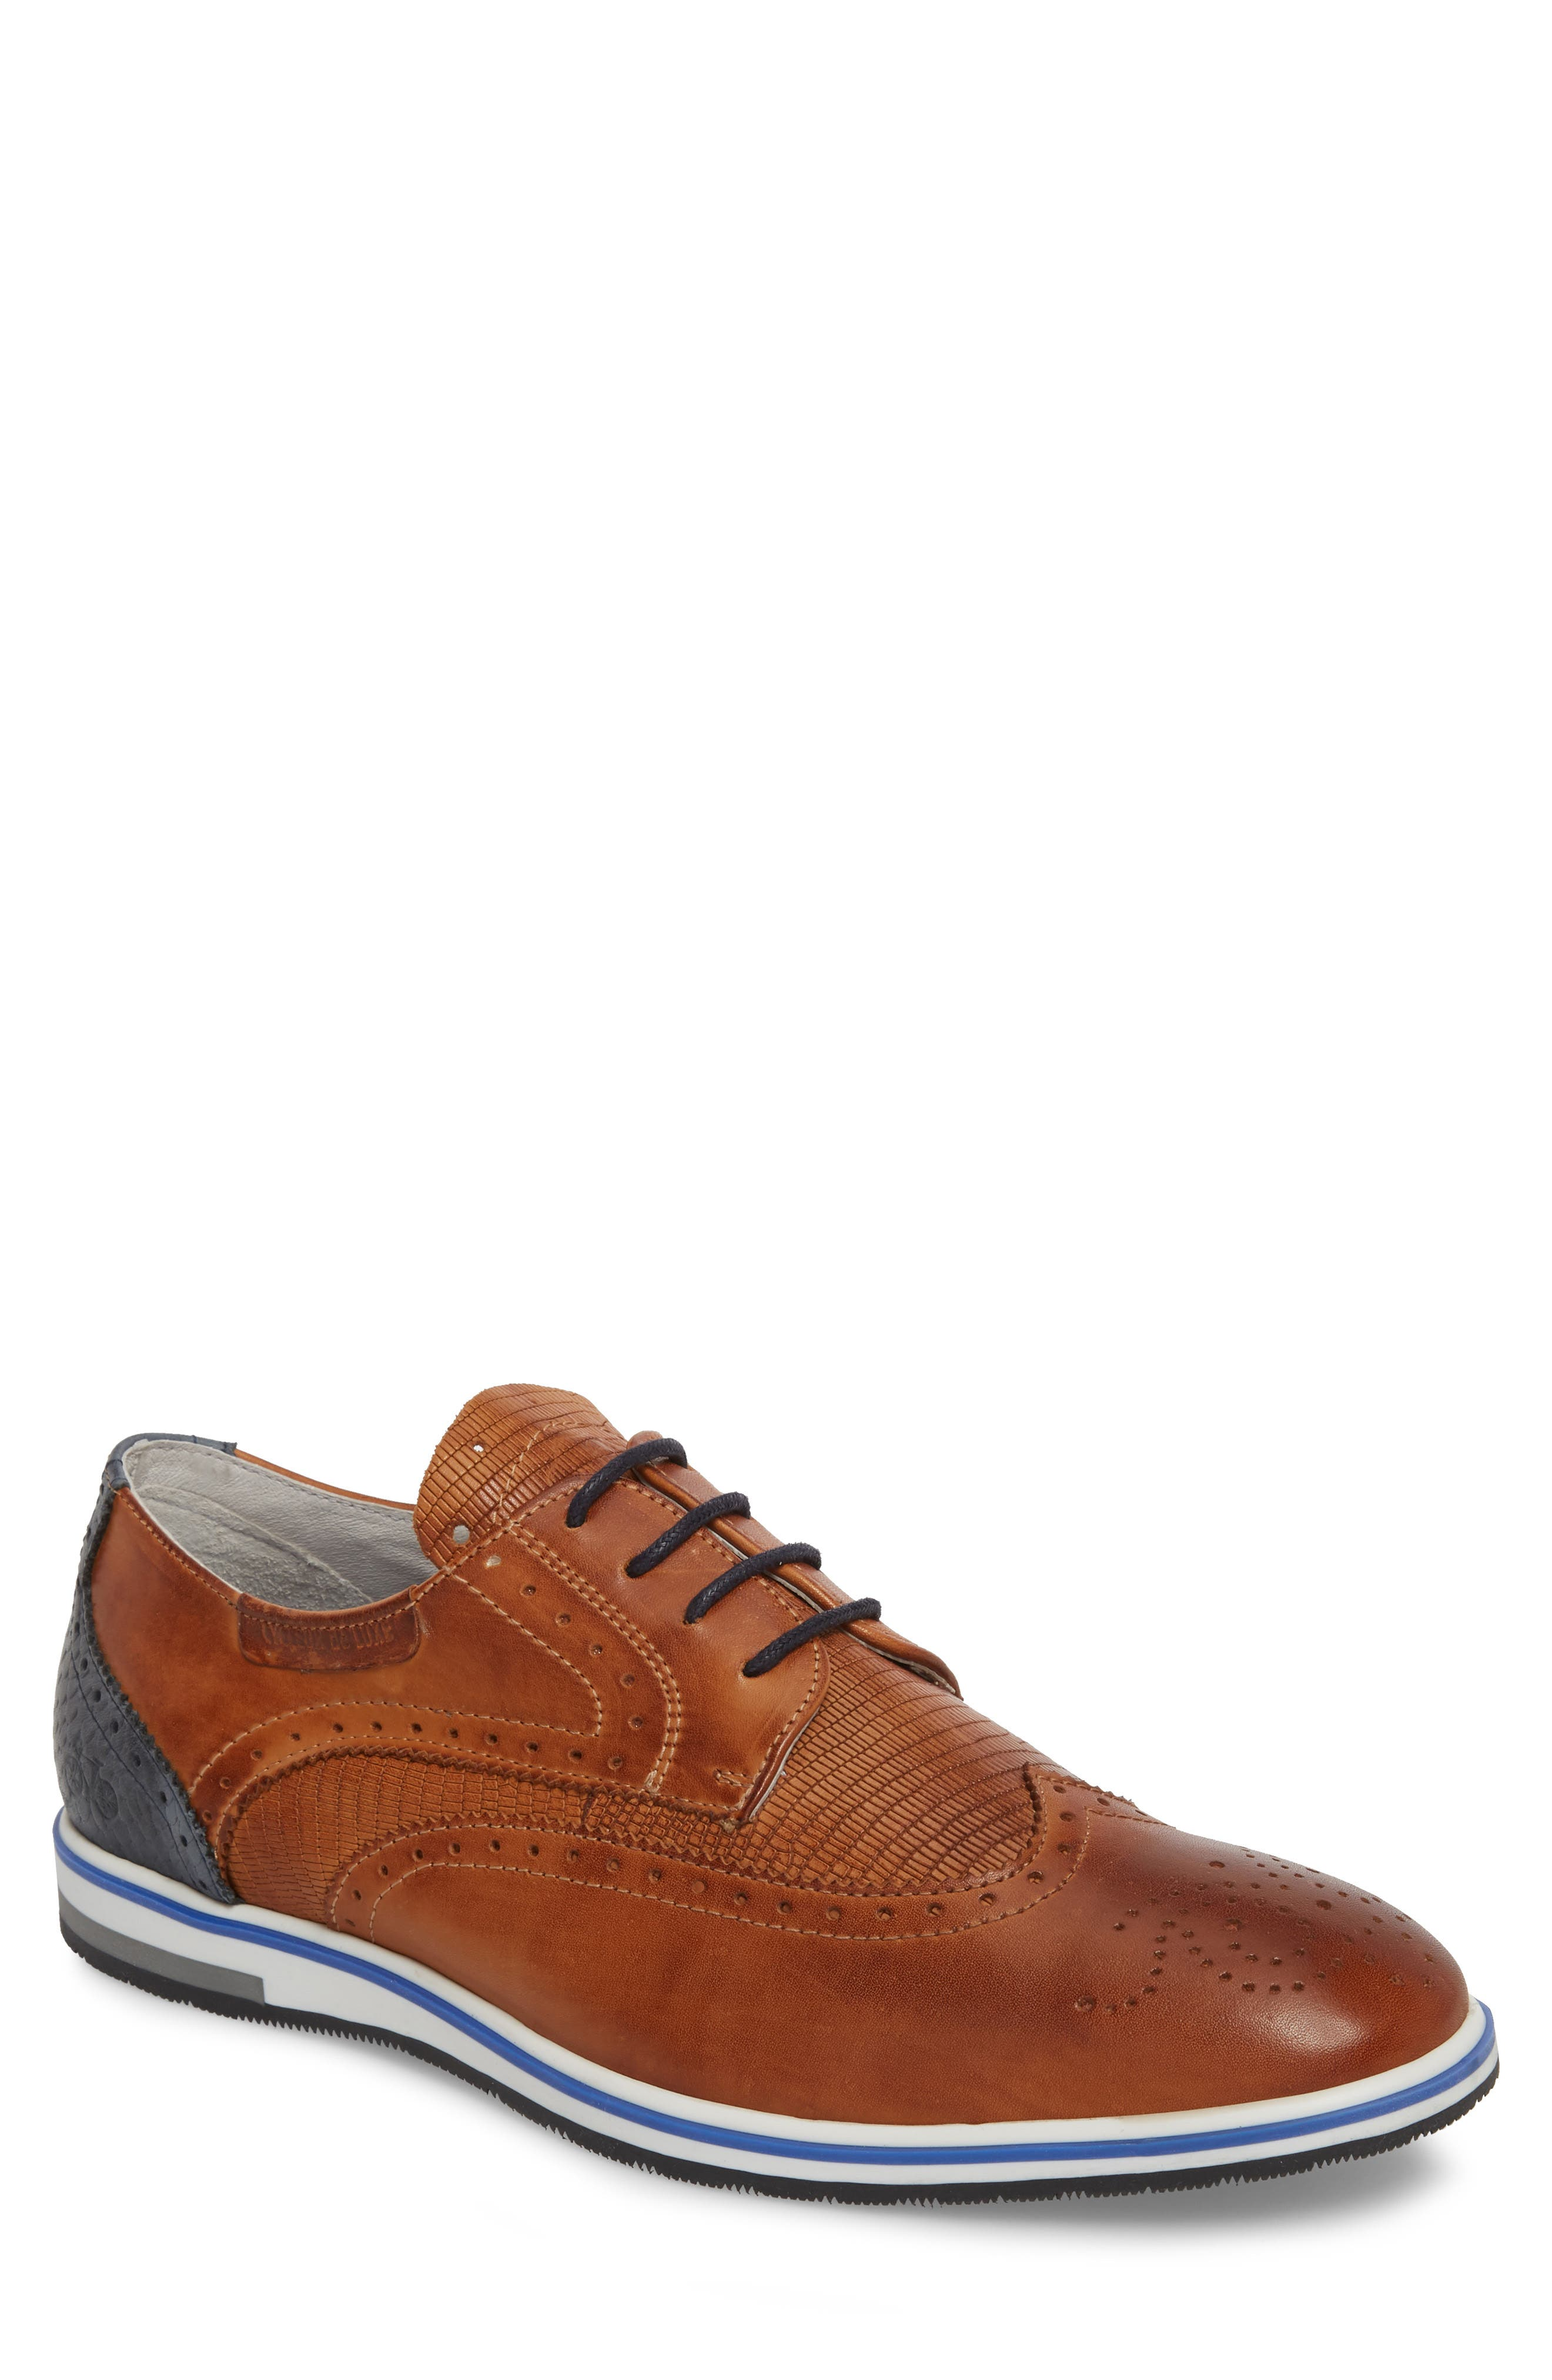 Pulsano Textured Wingtip,                         Main,                         color, Cognac/ Denim Leather